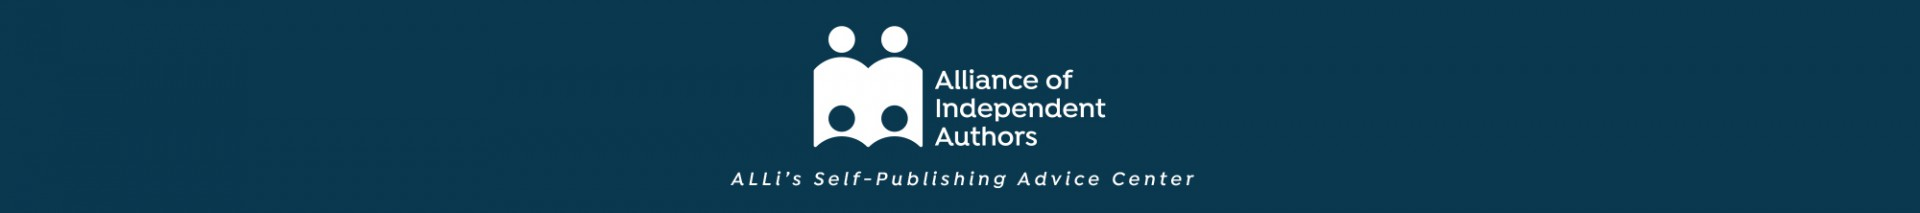 Alliance of Independent Authors: Self-Publishing Advice Center